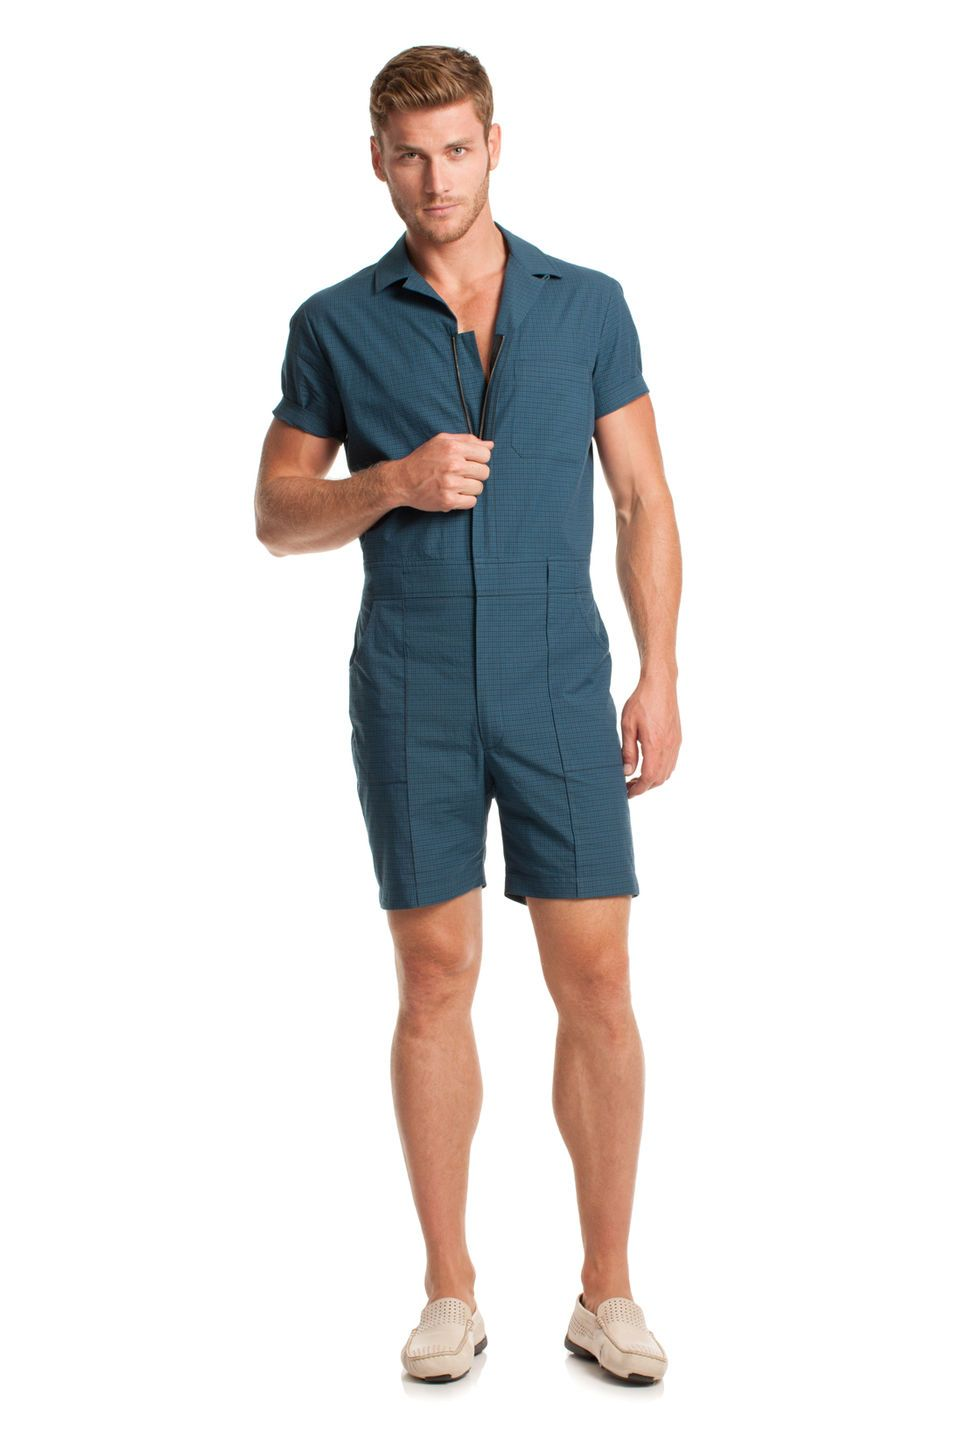 15bbefce7aa7 Rompers for men